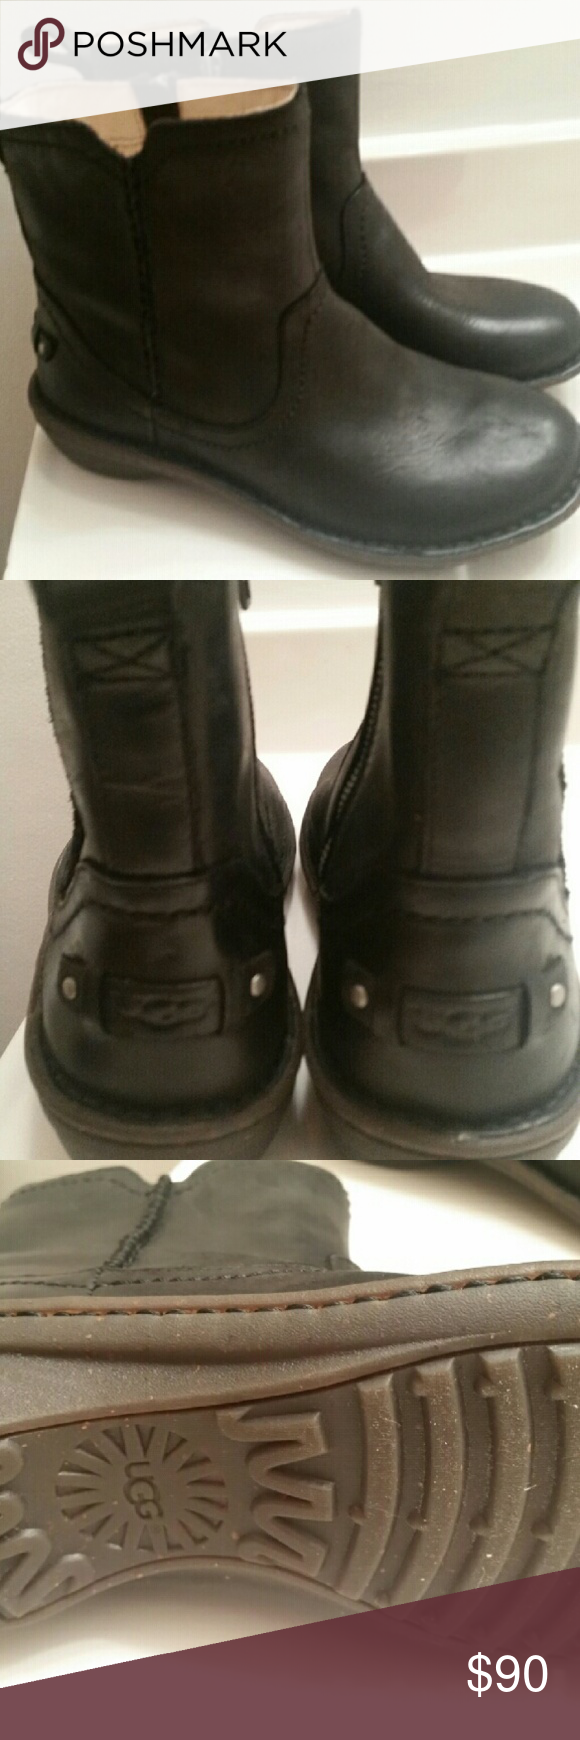 5fb1c61c14b Nwob Women's Ugg boots Brand new without box or tags. Never worn ...